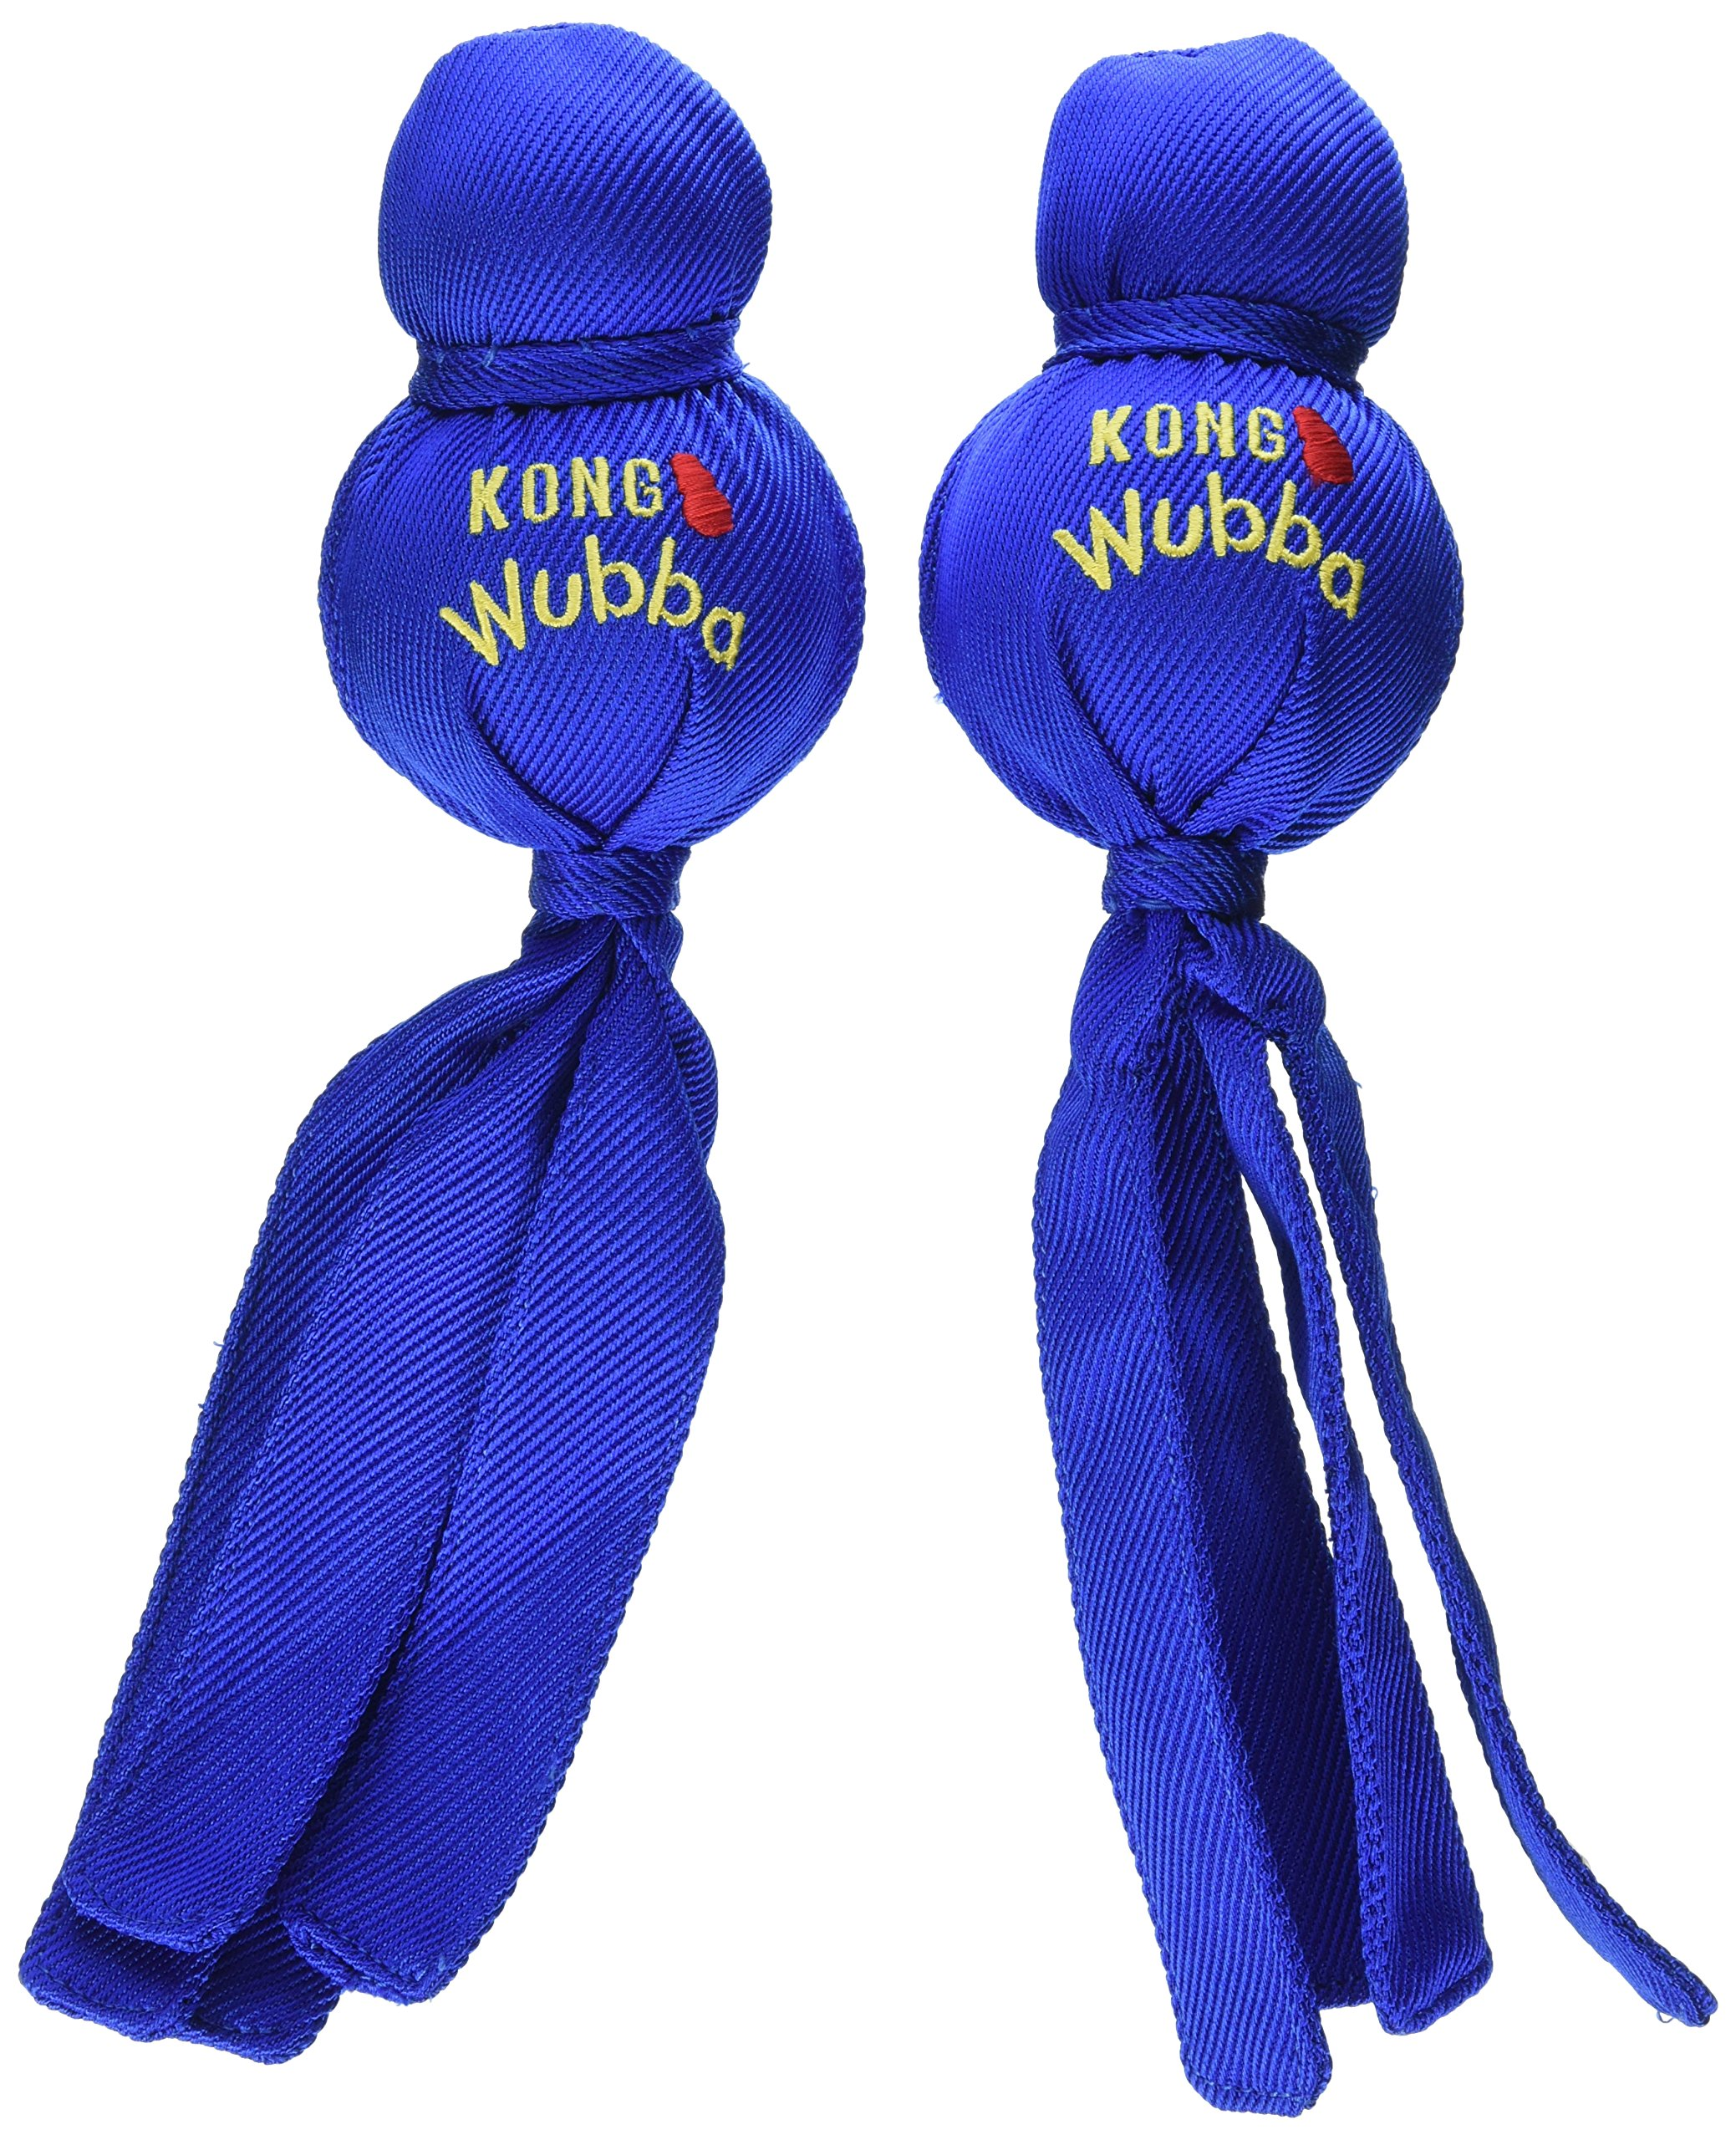 Kong Wubba Dog Size:Large Packs:Pack of 2 by HDP